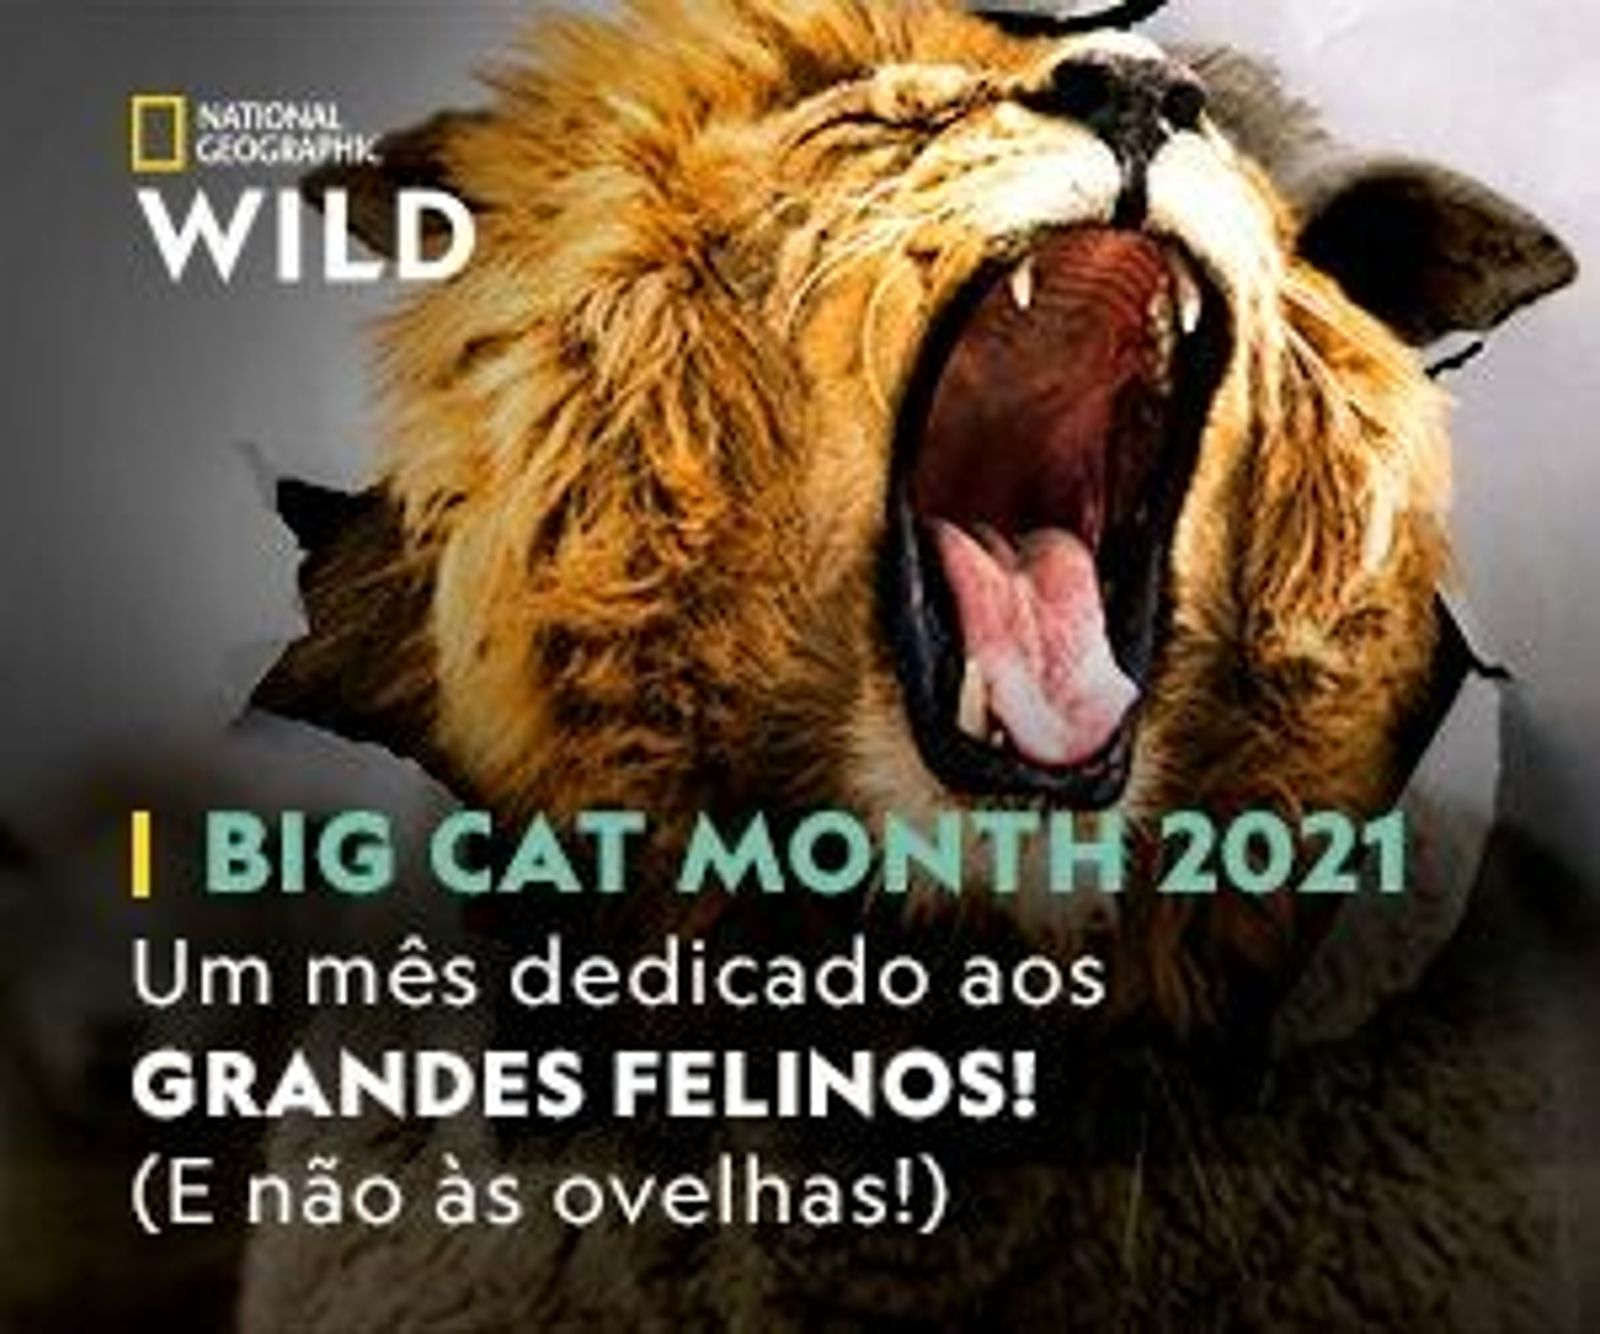 Big Cat Month 2021